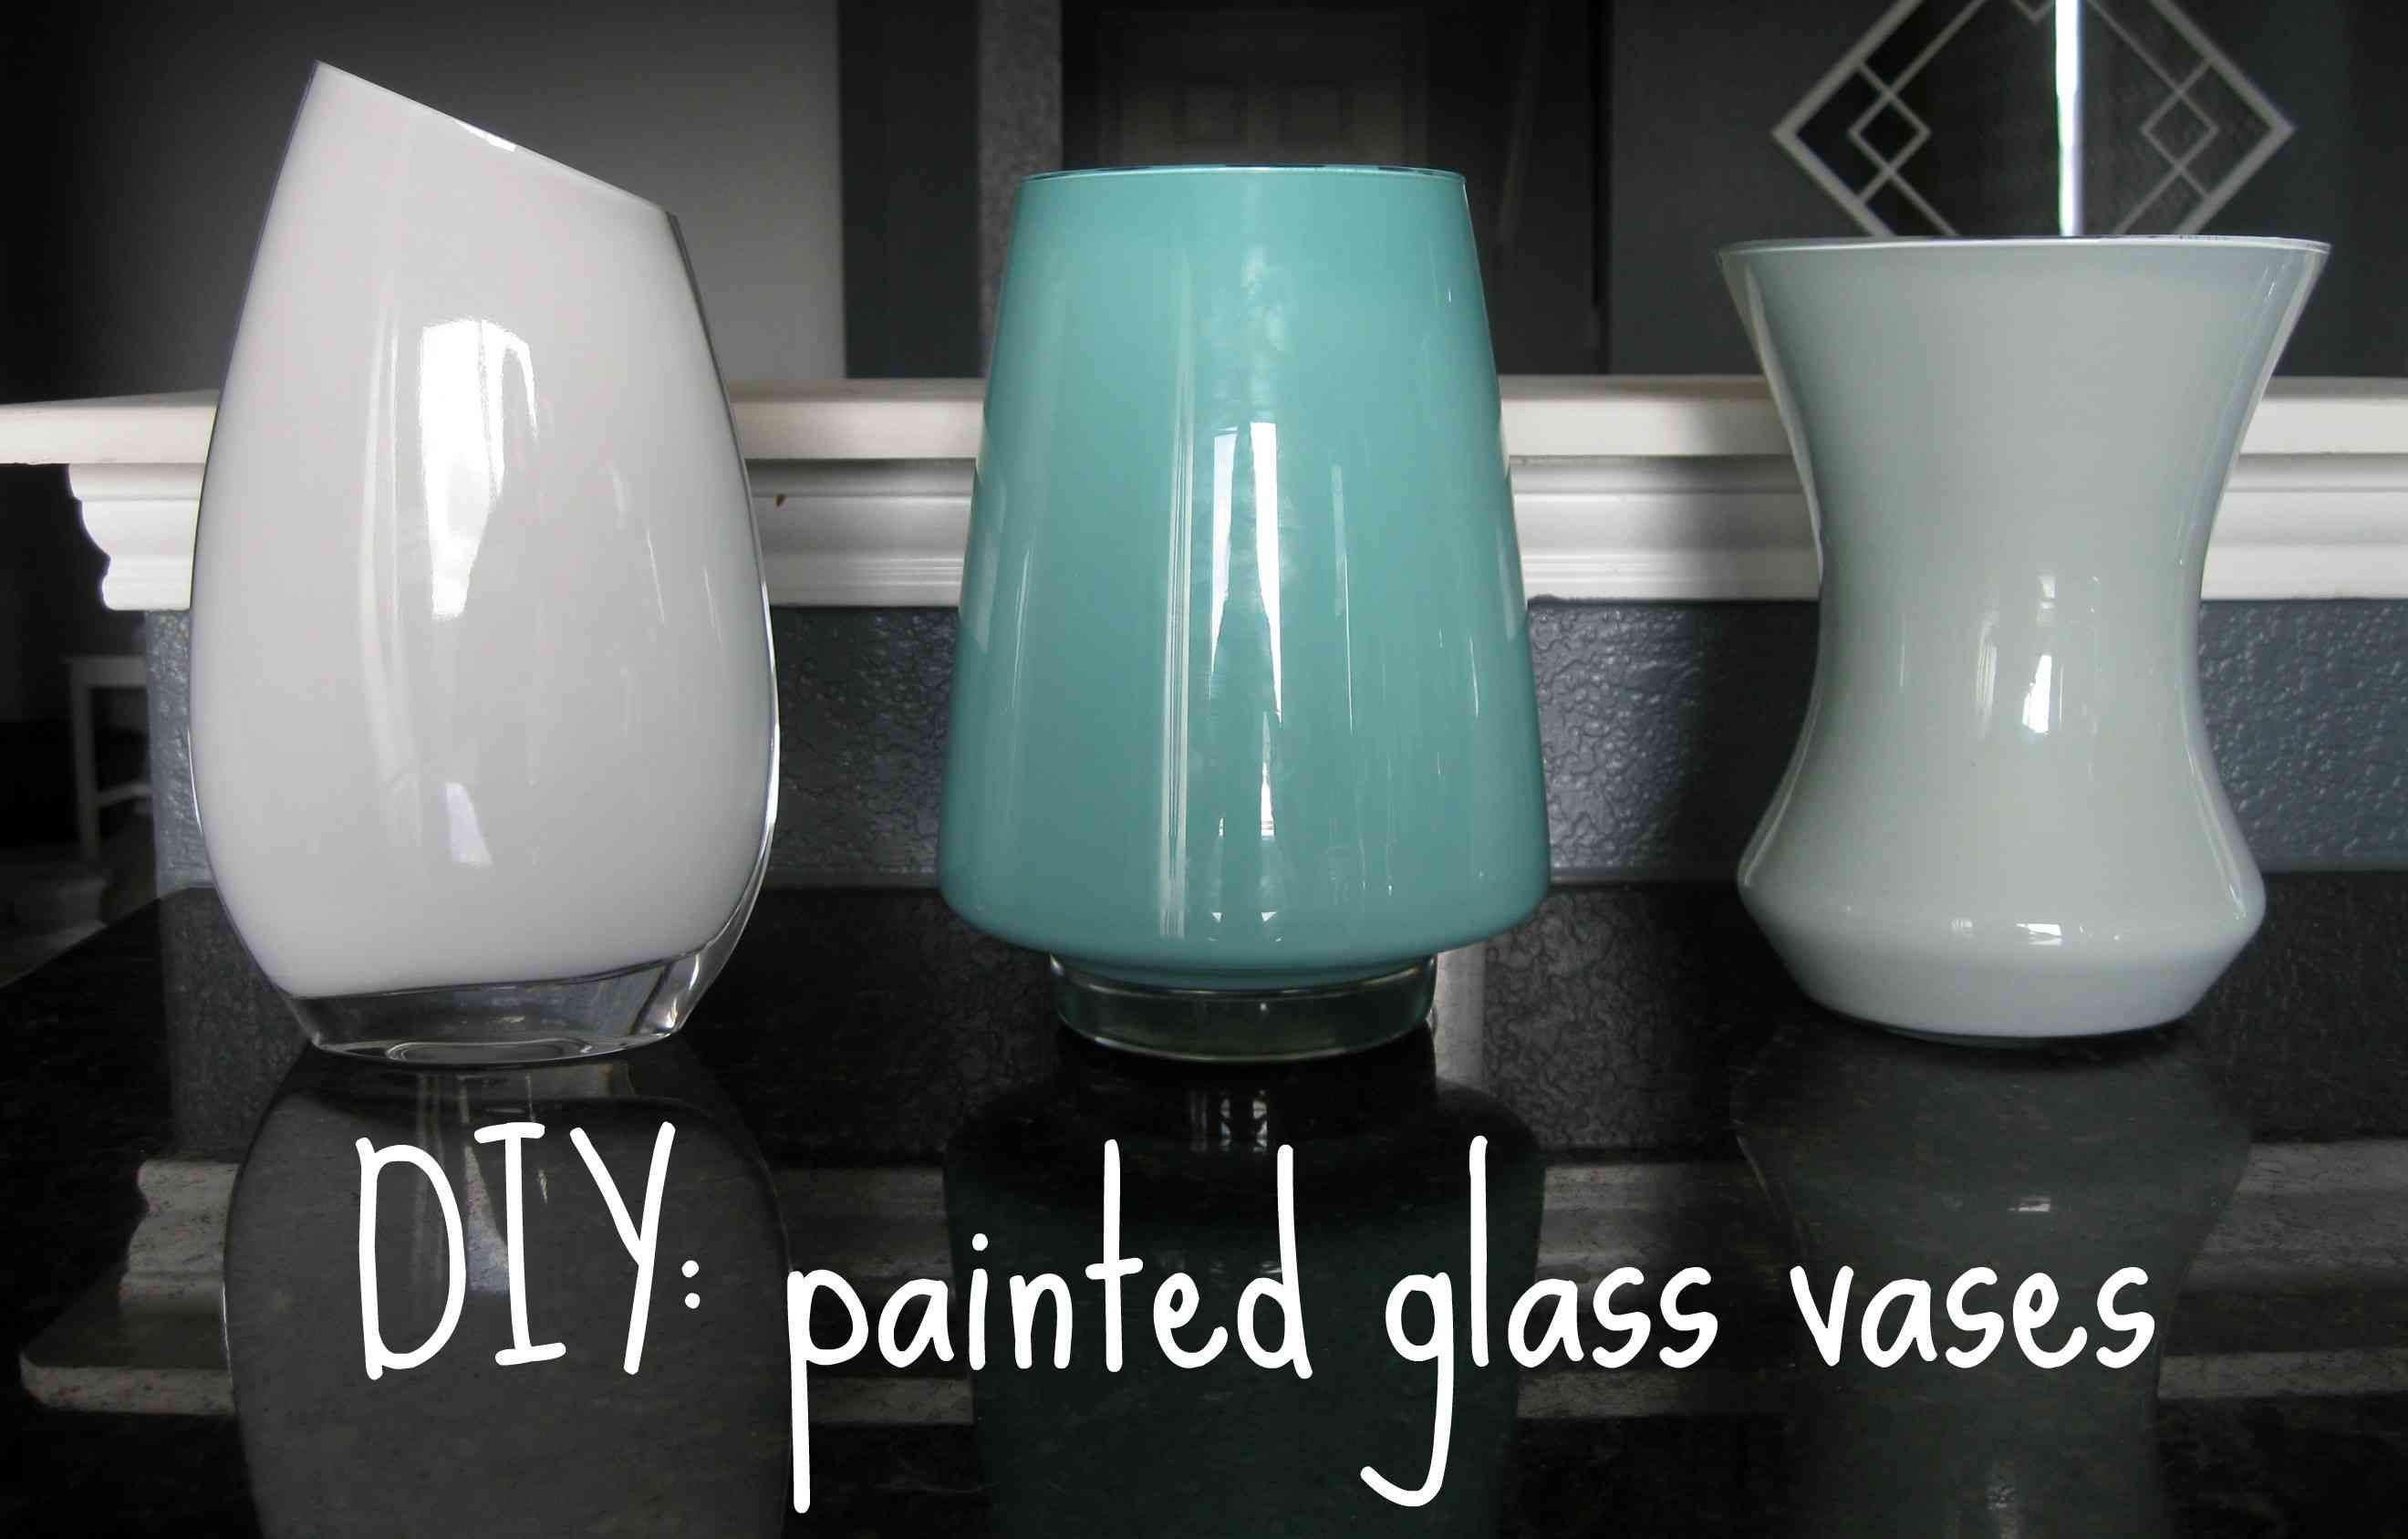 tall thin blue vase of 23 blue crystal vase the weekly world intended for diy painted glass vasesh vases how to paint vasesi 0d via conejita info